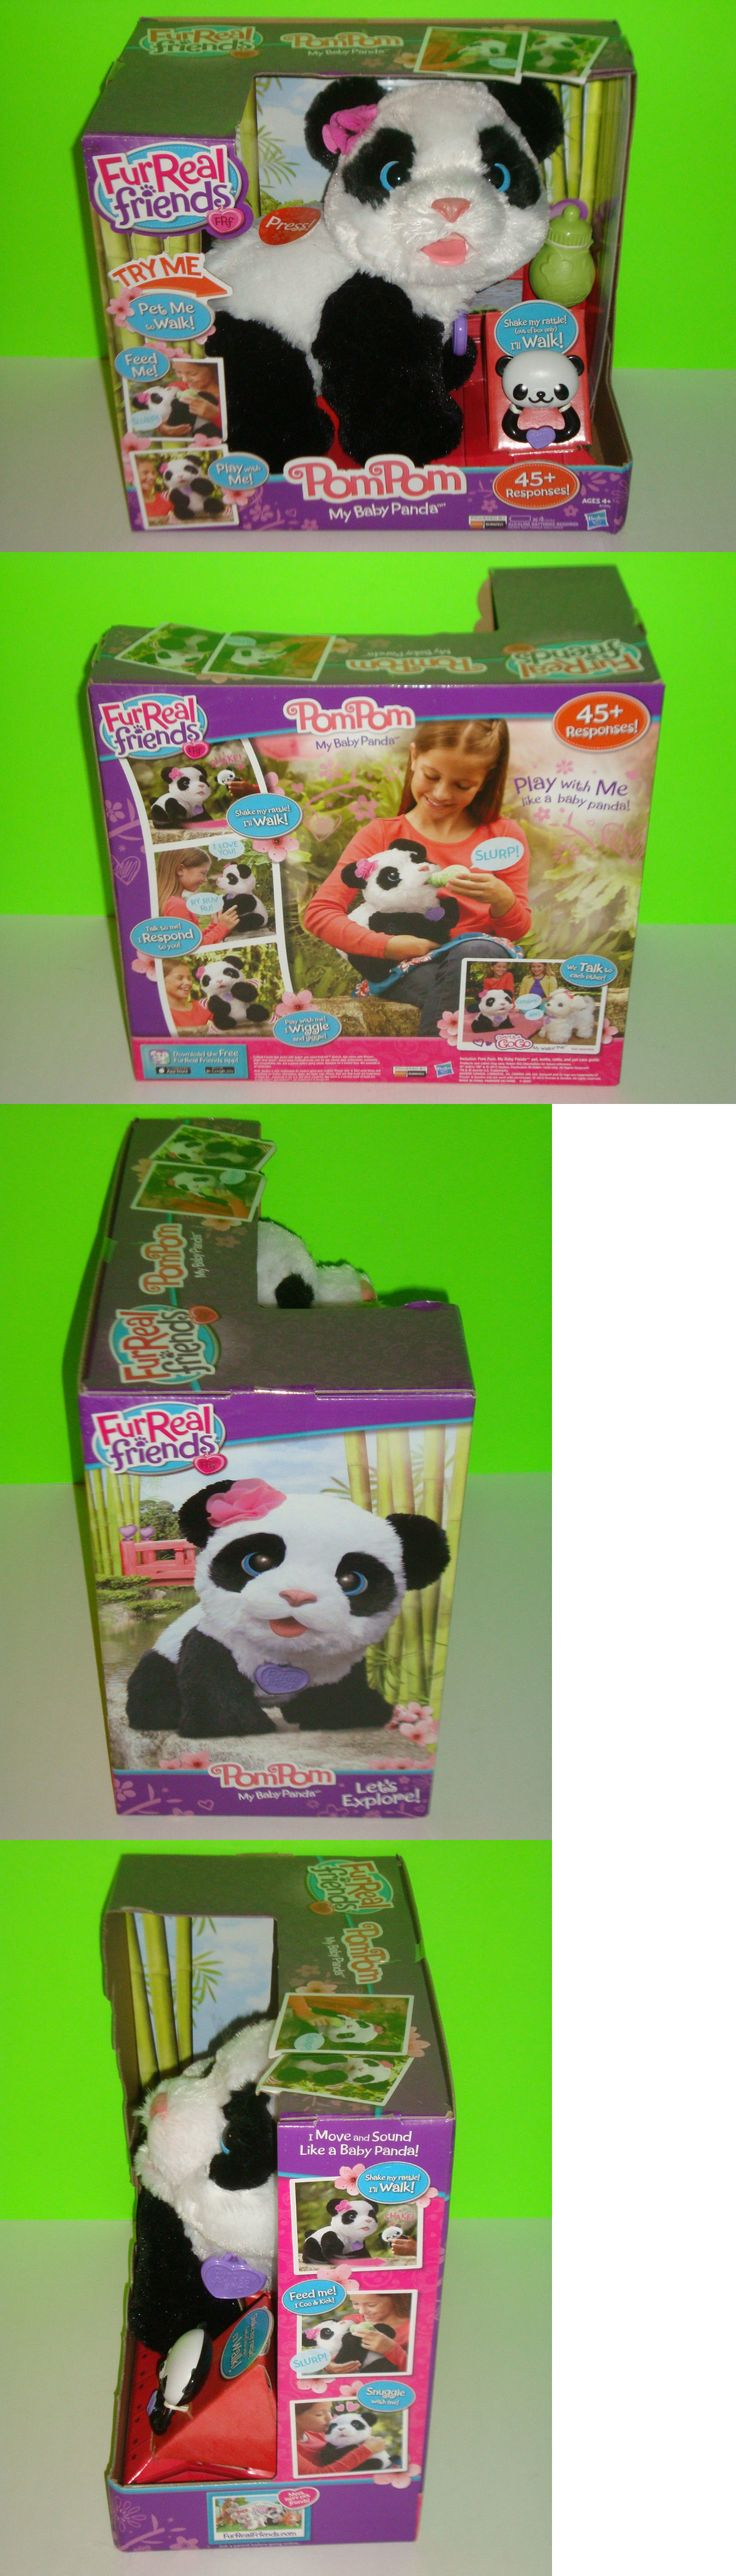 FurReal Friends 38288: Furreal Friends Pompom My Baby Panda Bear Pet Interactive Toy Fur Real Pompom -> BUY IT NOW ONLY: $44.99 on eBay!